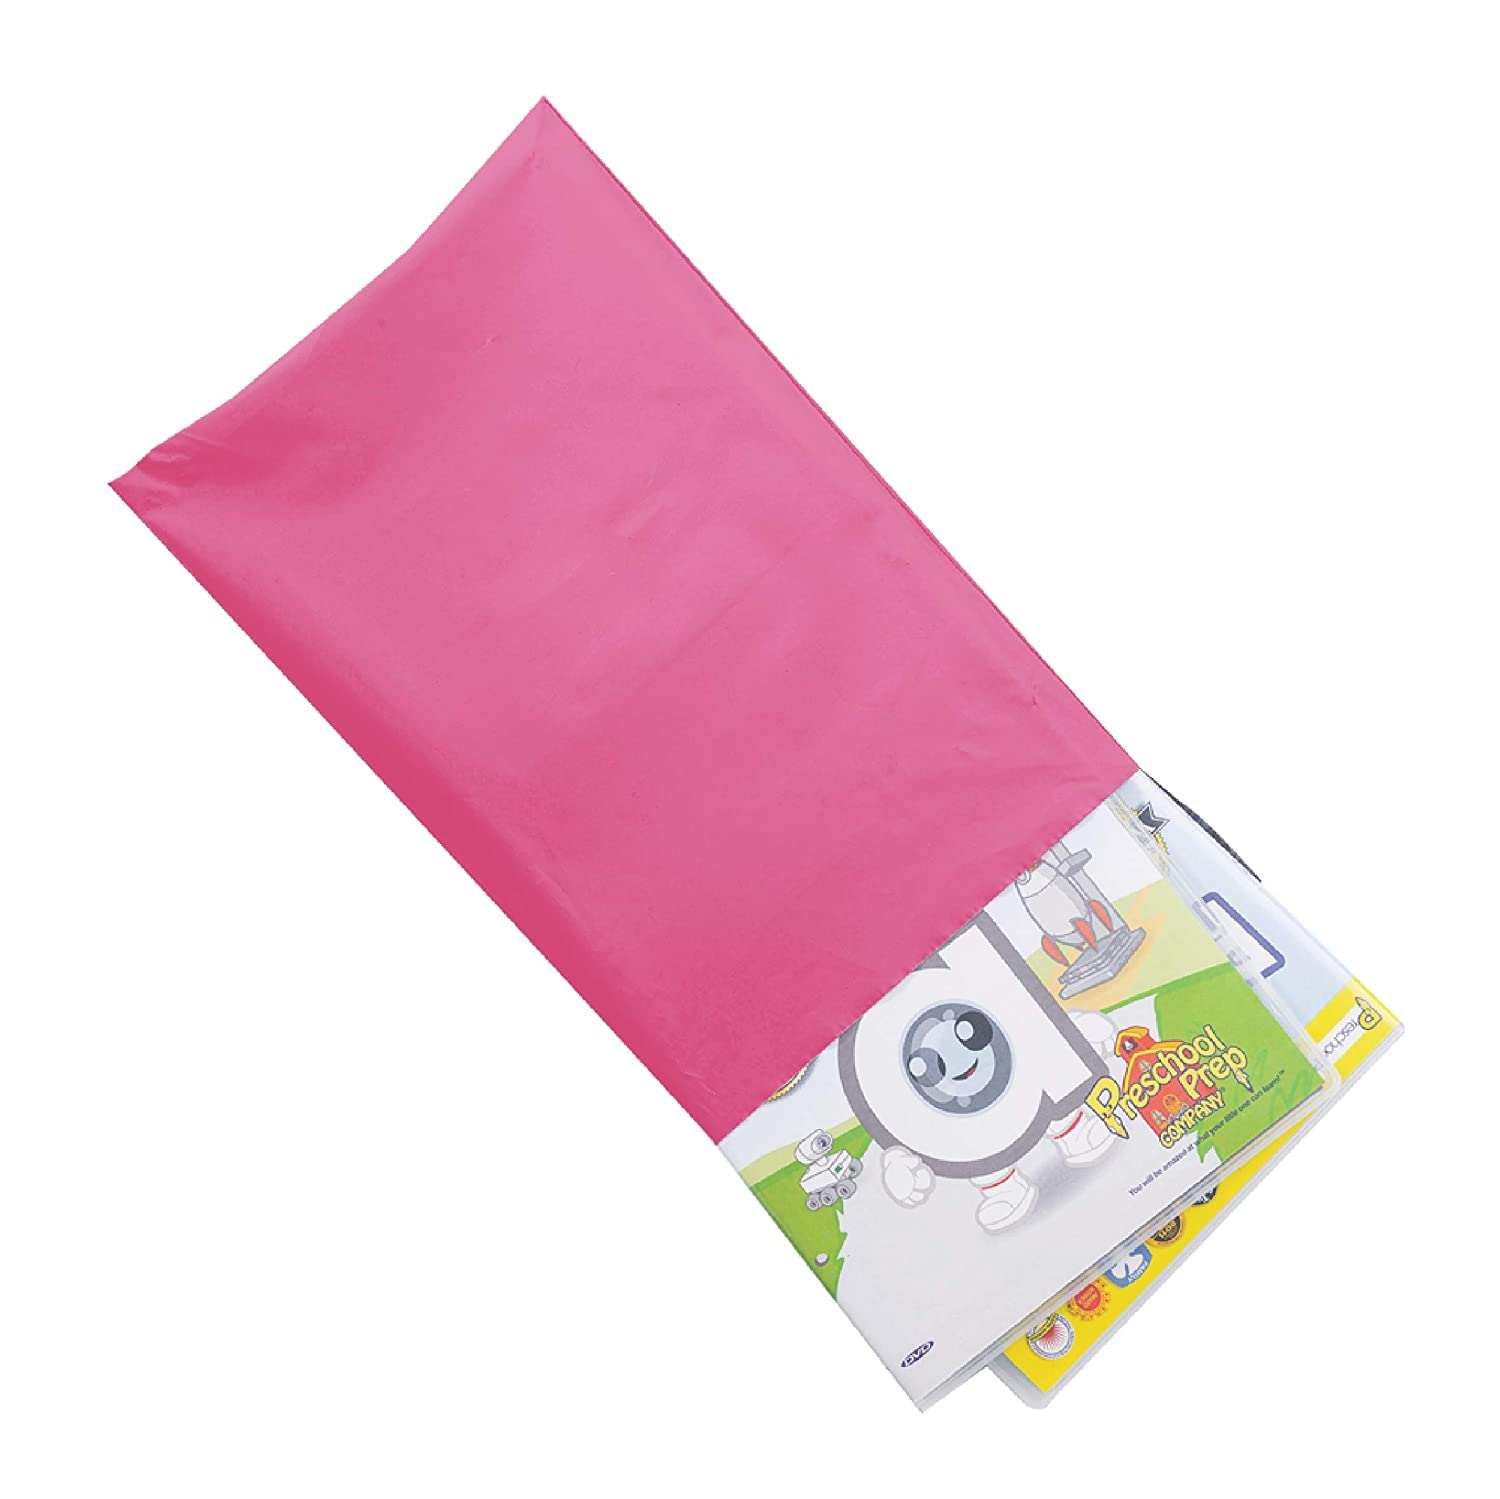 Max 40% OFF WiiGreen #1 1000 New product type PCS 6x9 inch Shipping Envelopes Pa Poly Mailers